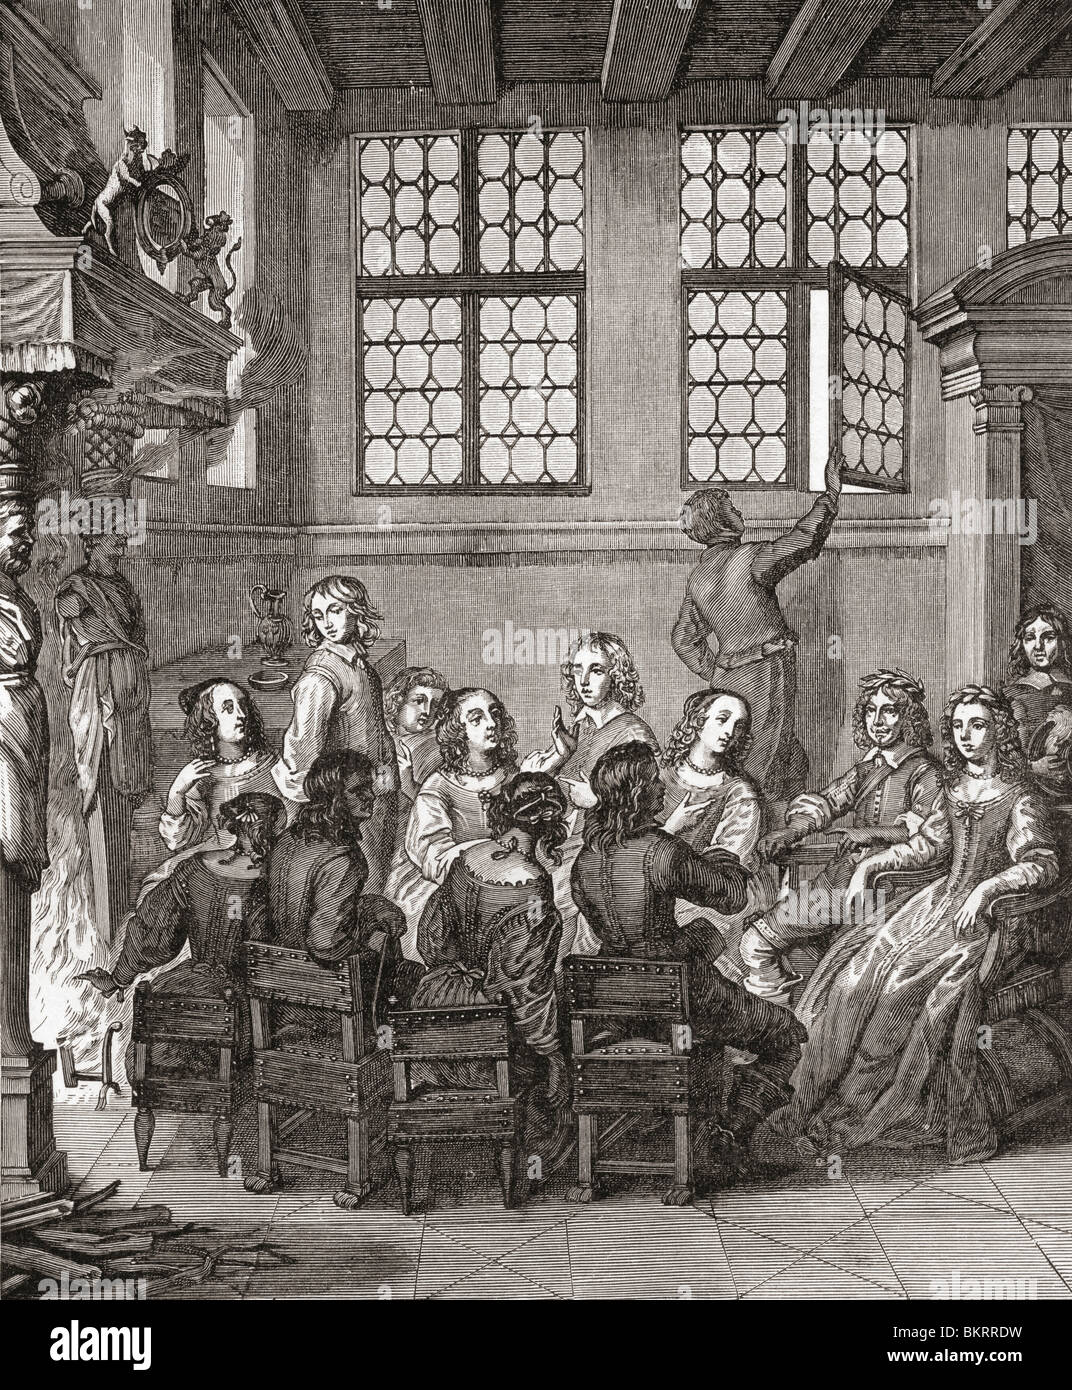 A party at the Duke of Newcastle's house in the 17th century - Stock Image